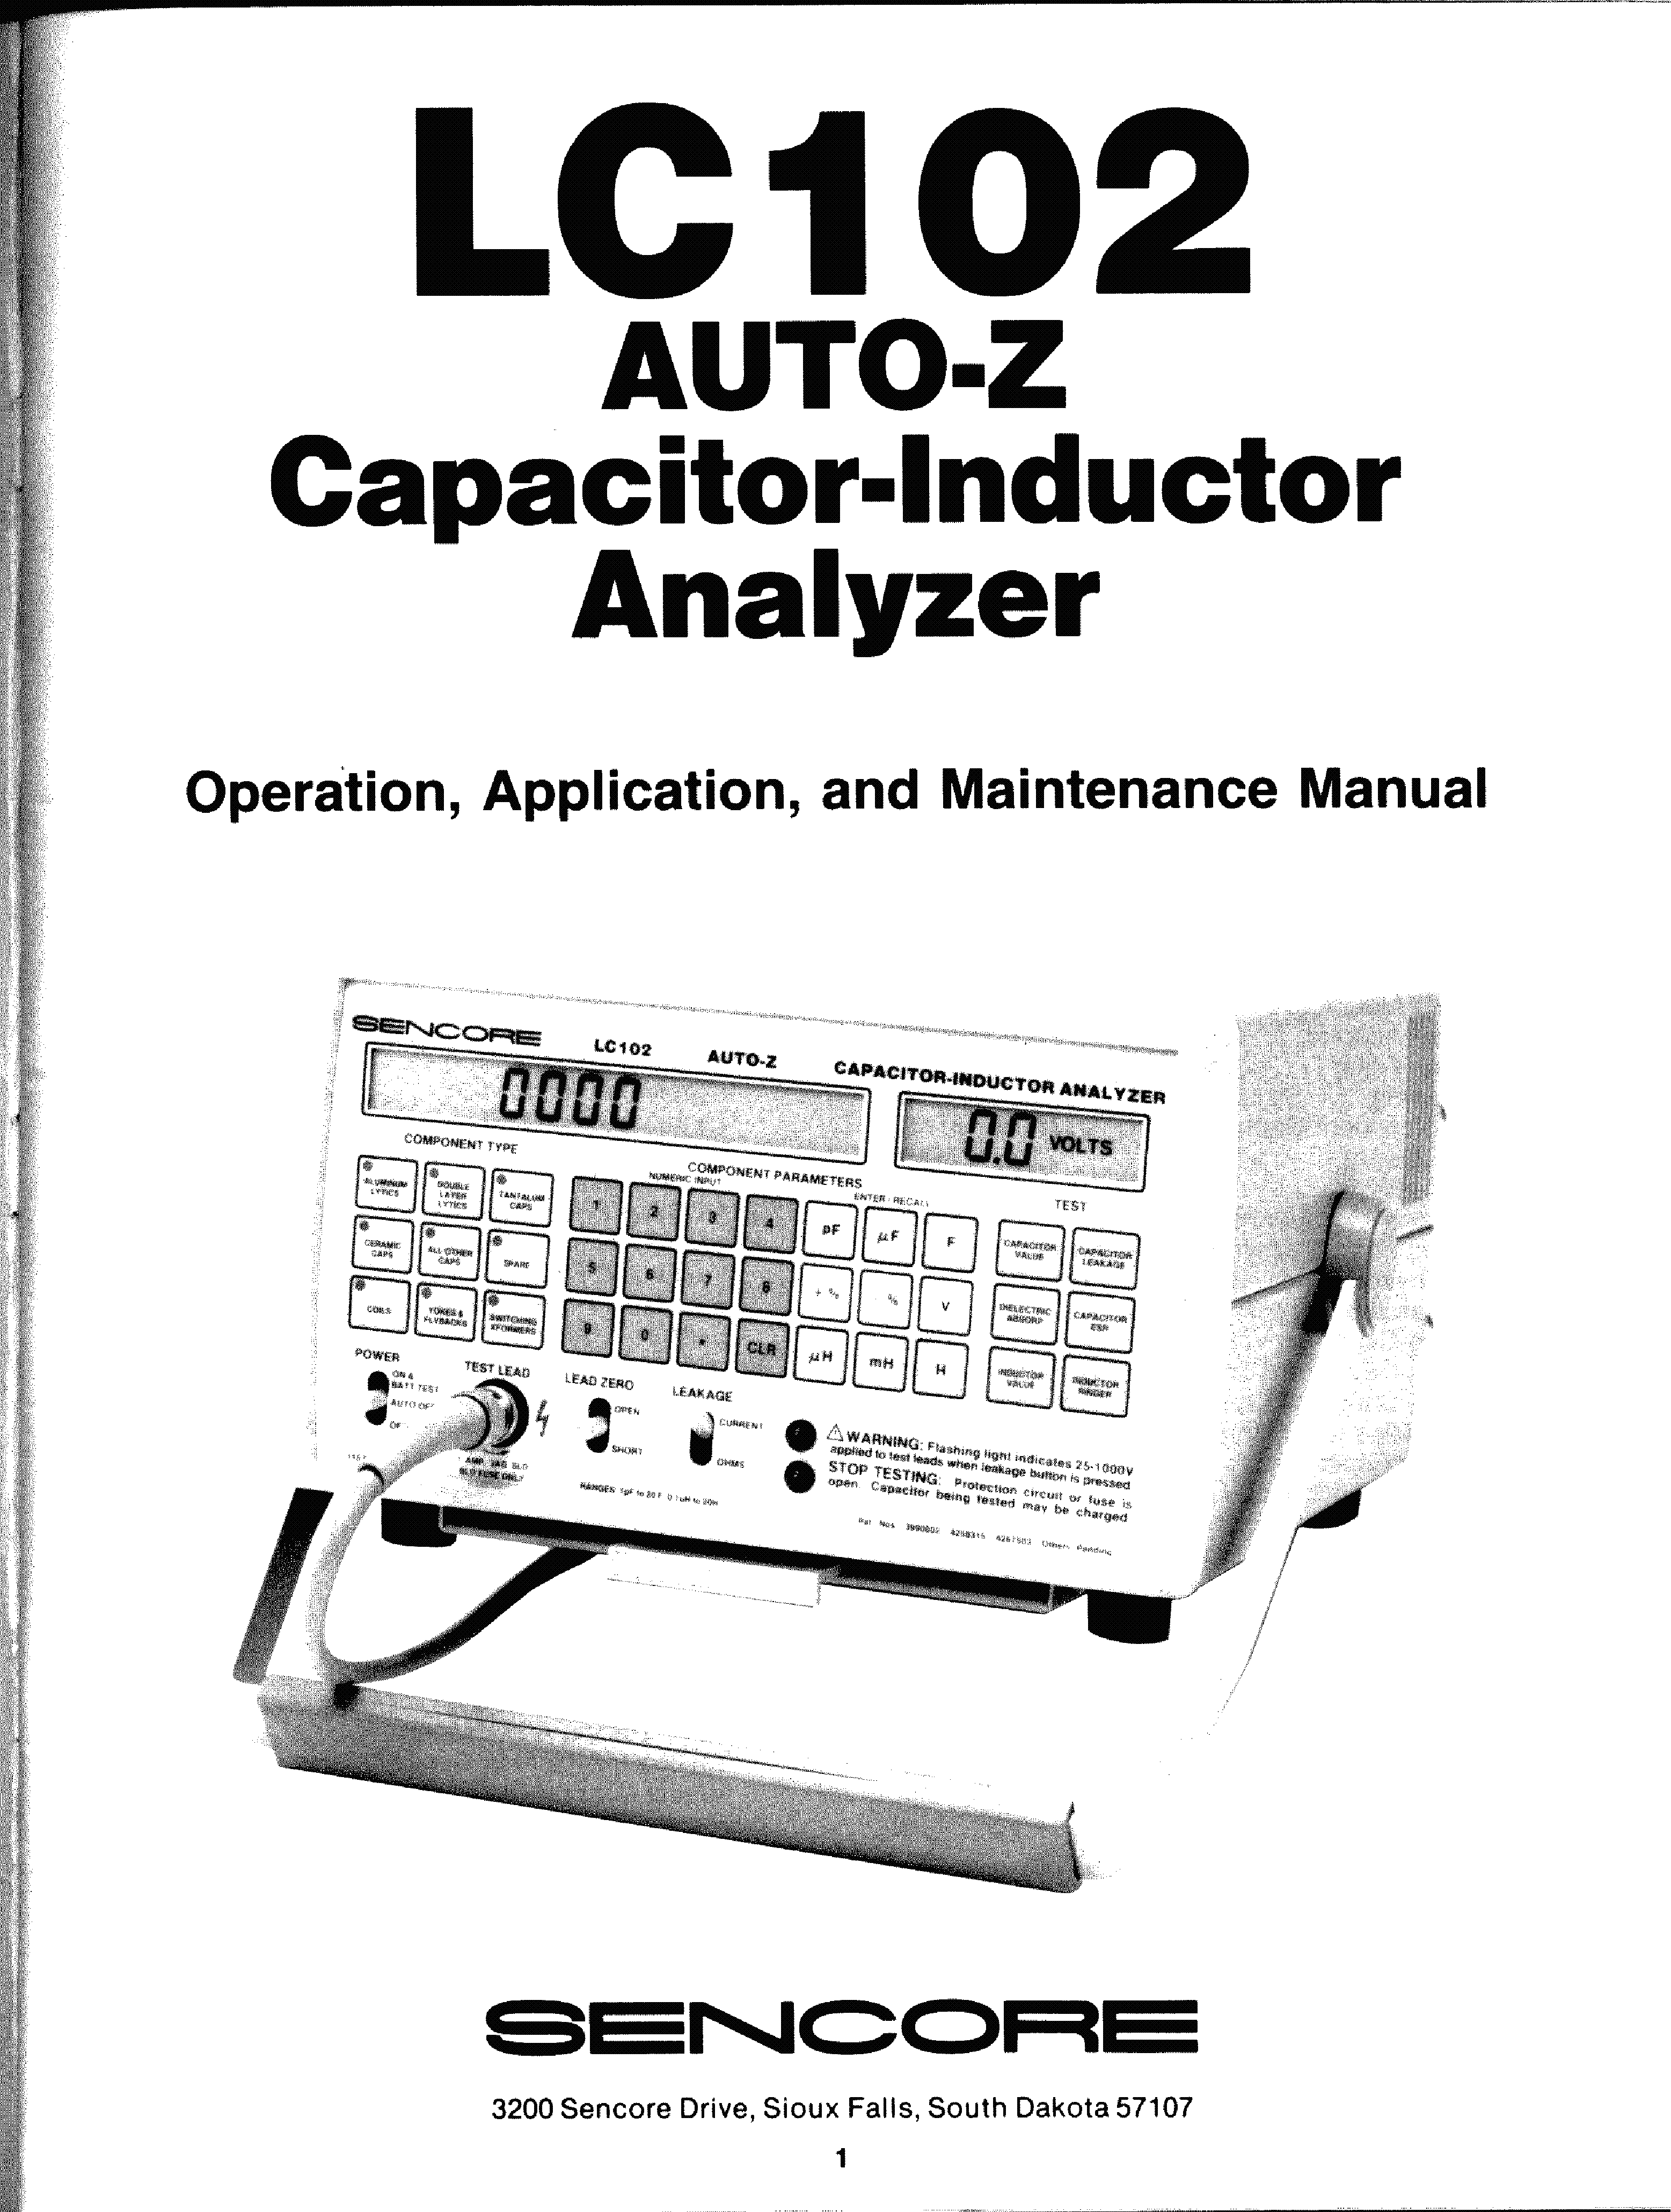 SENCORE LC102 AUTO-Z CAPACITOR-INDUCTOR ANALYZER Service